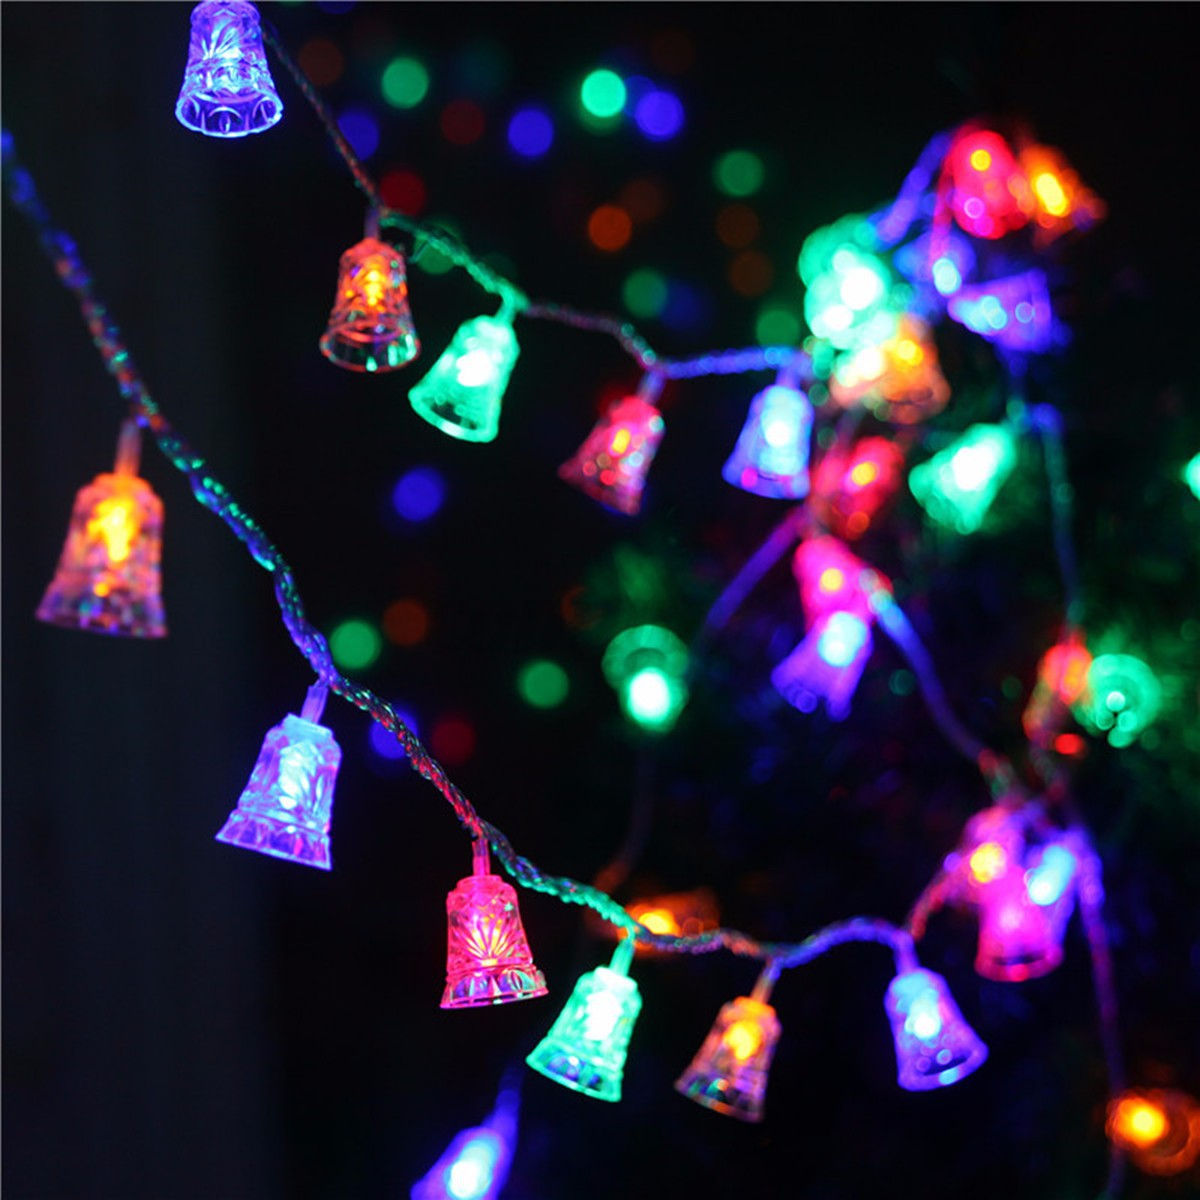 20 LED Christmas Bell Shaped Flashing Light String Xmas Tree Hanging Decoration eBay